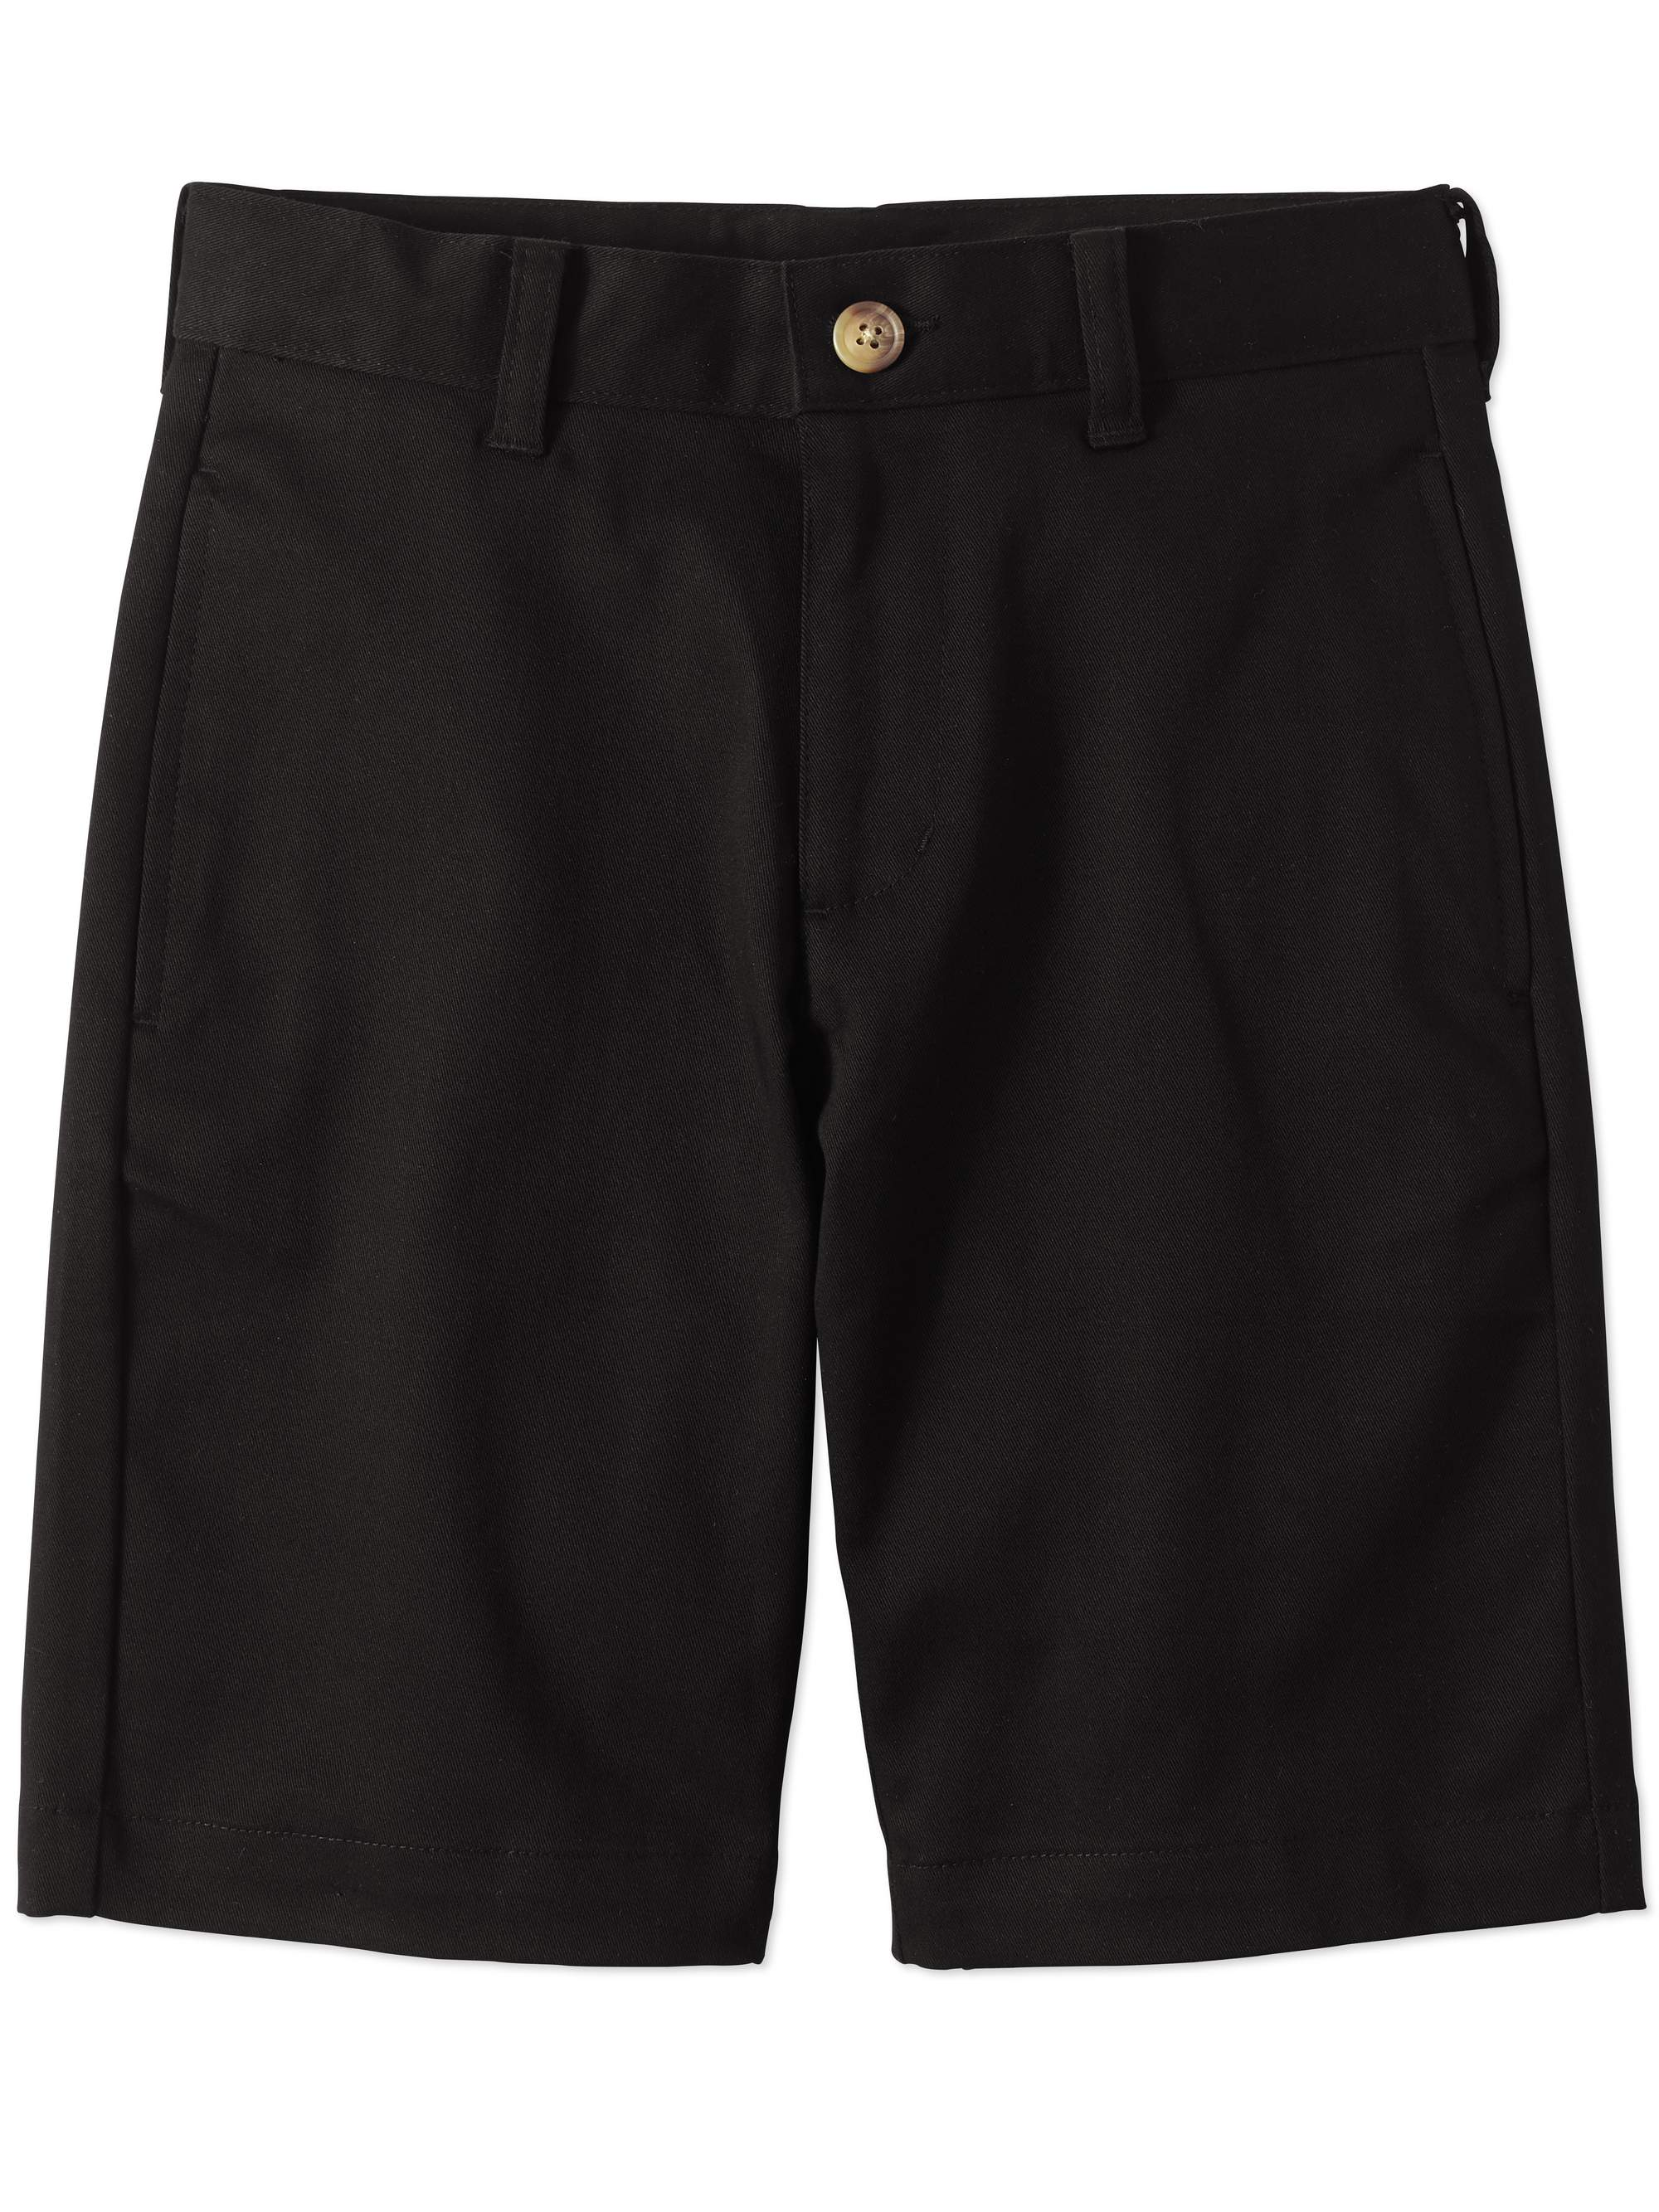 Boys Slim School Uniform Super Soft Flat Front Shorts